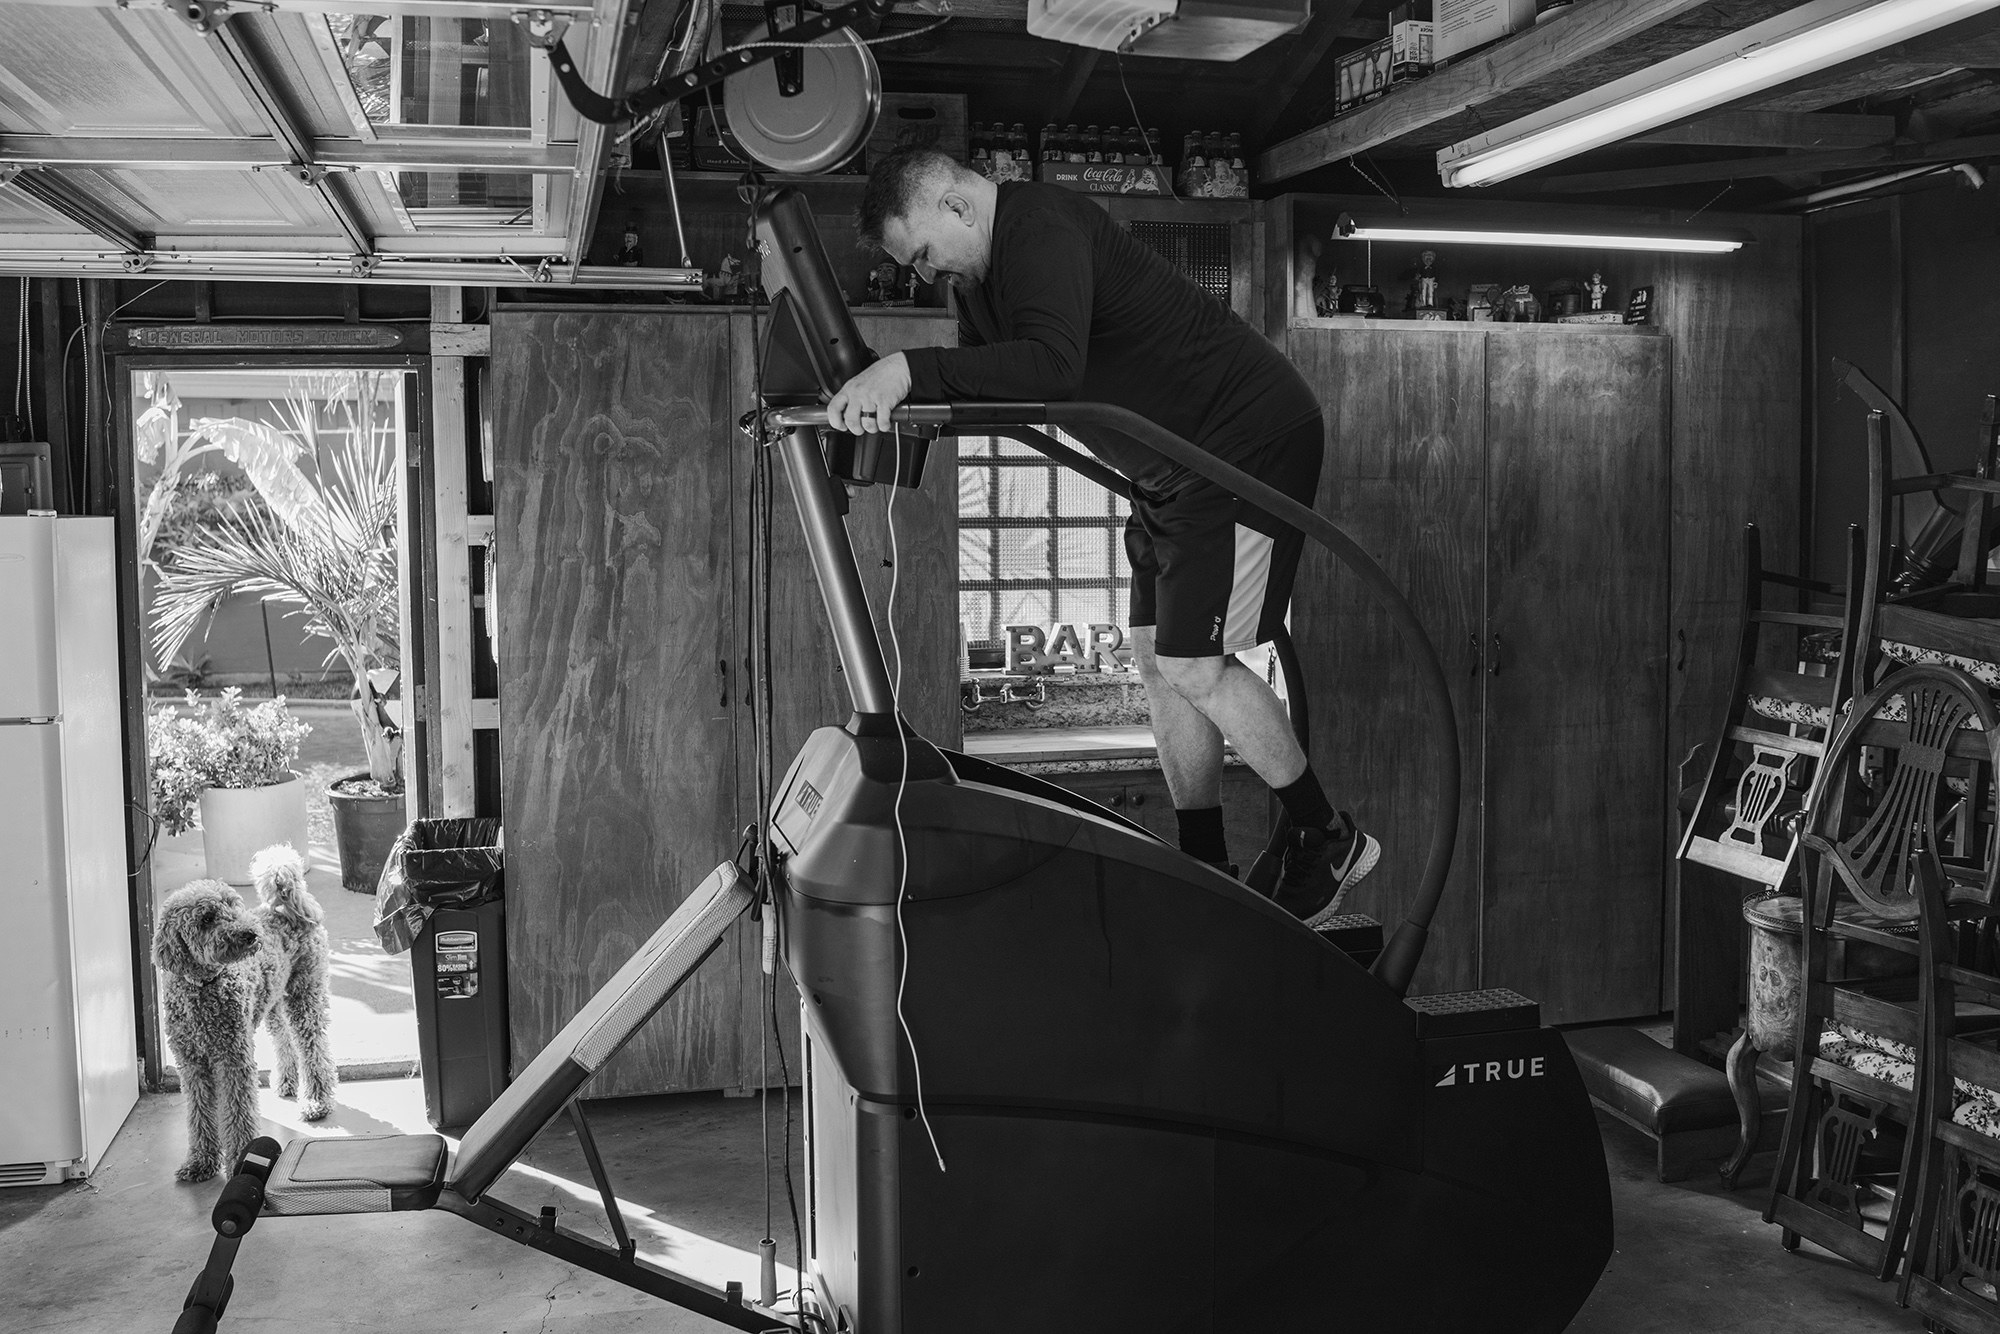 A man on a stairmaster in a garage while a dog watches, a pile of chairs is behind him